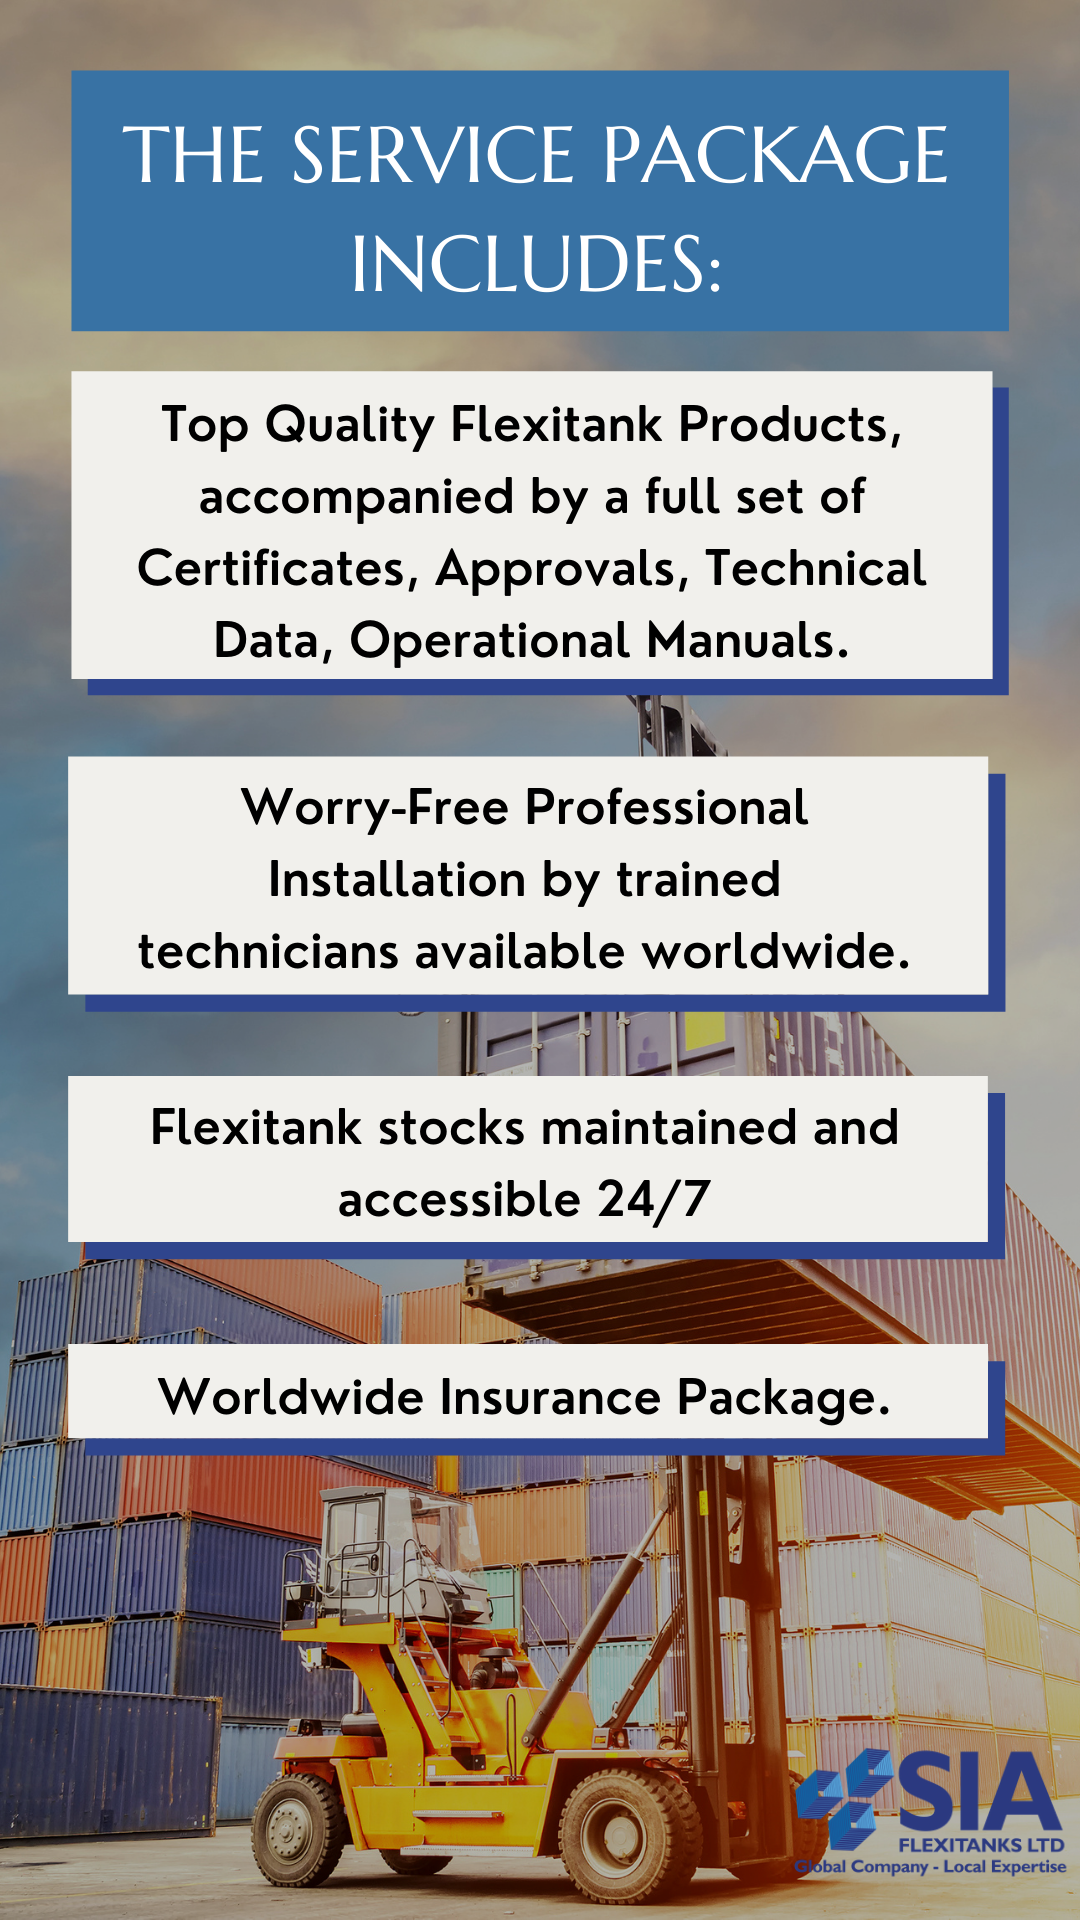 SIA Service Package for Freight Forwarding Companies